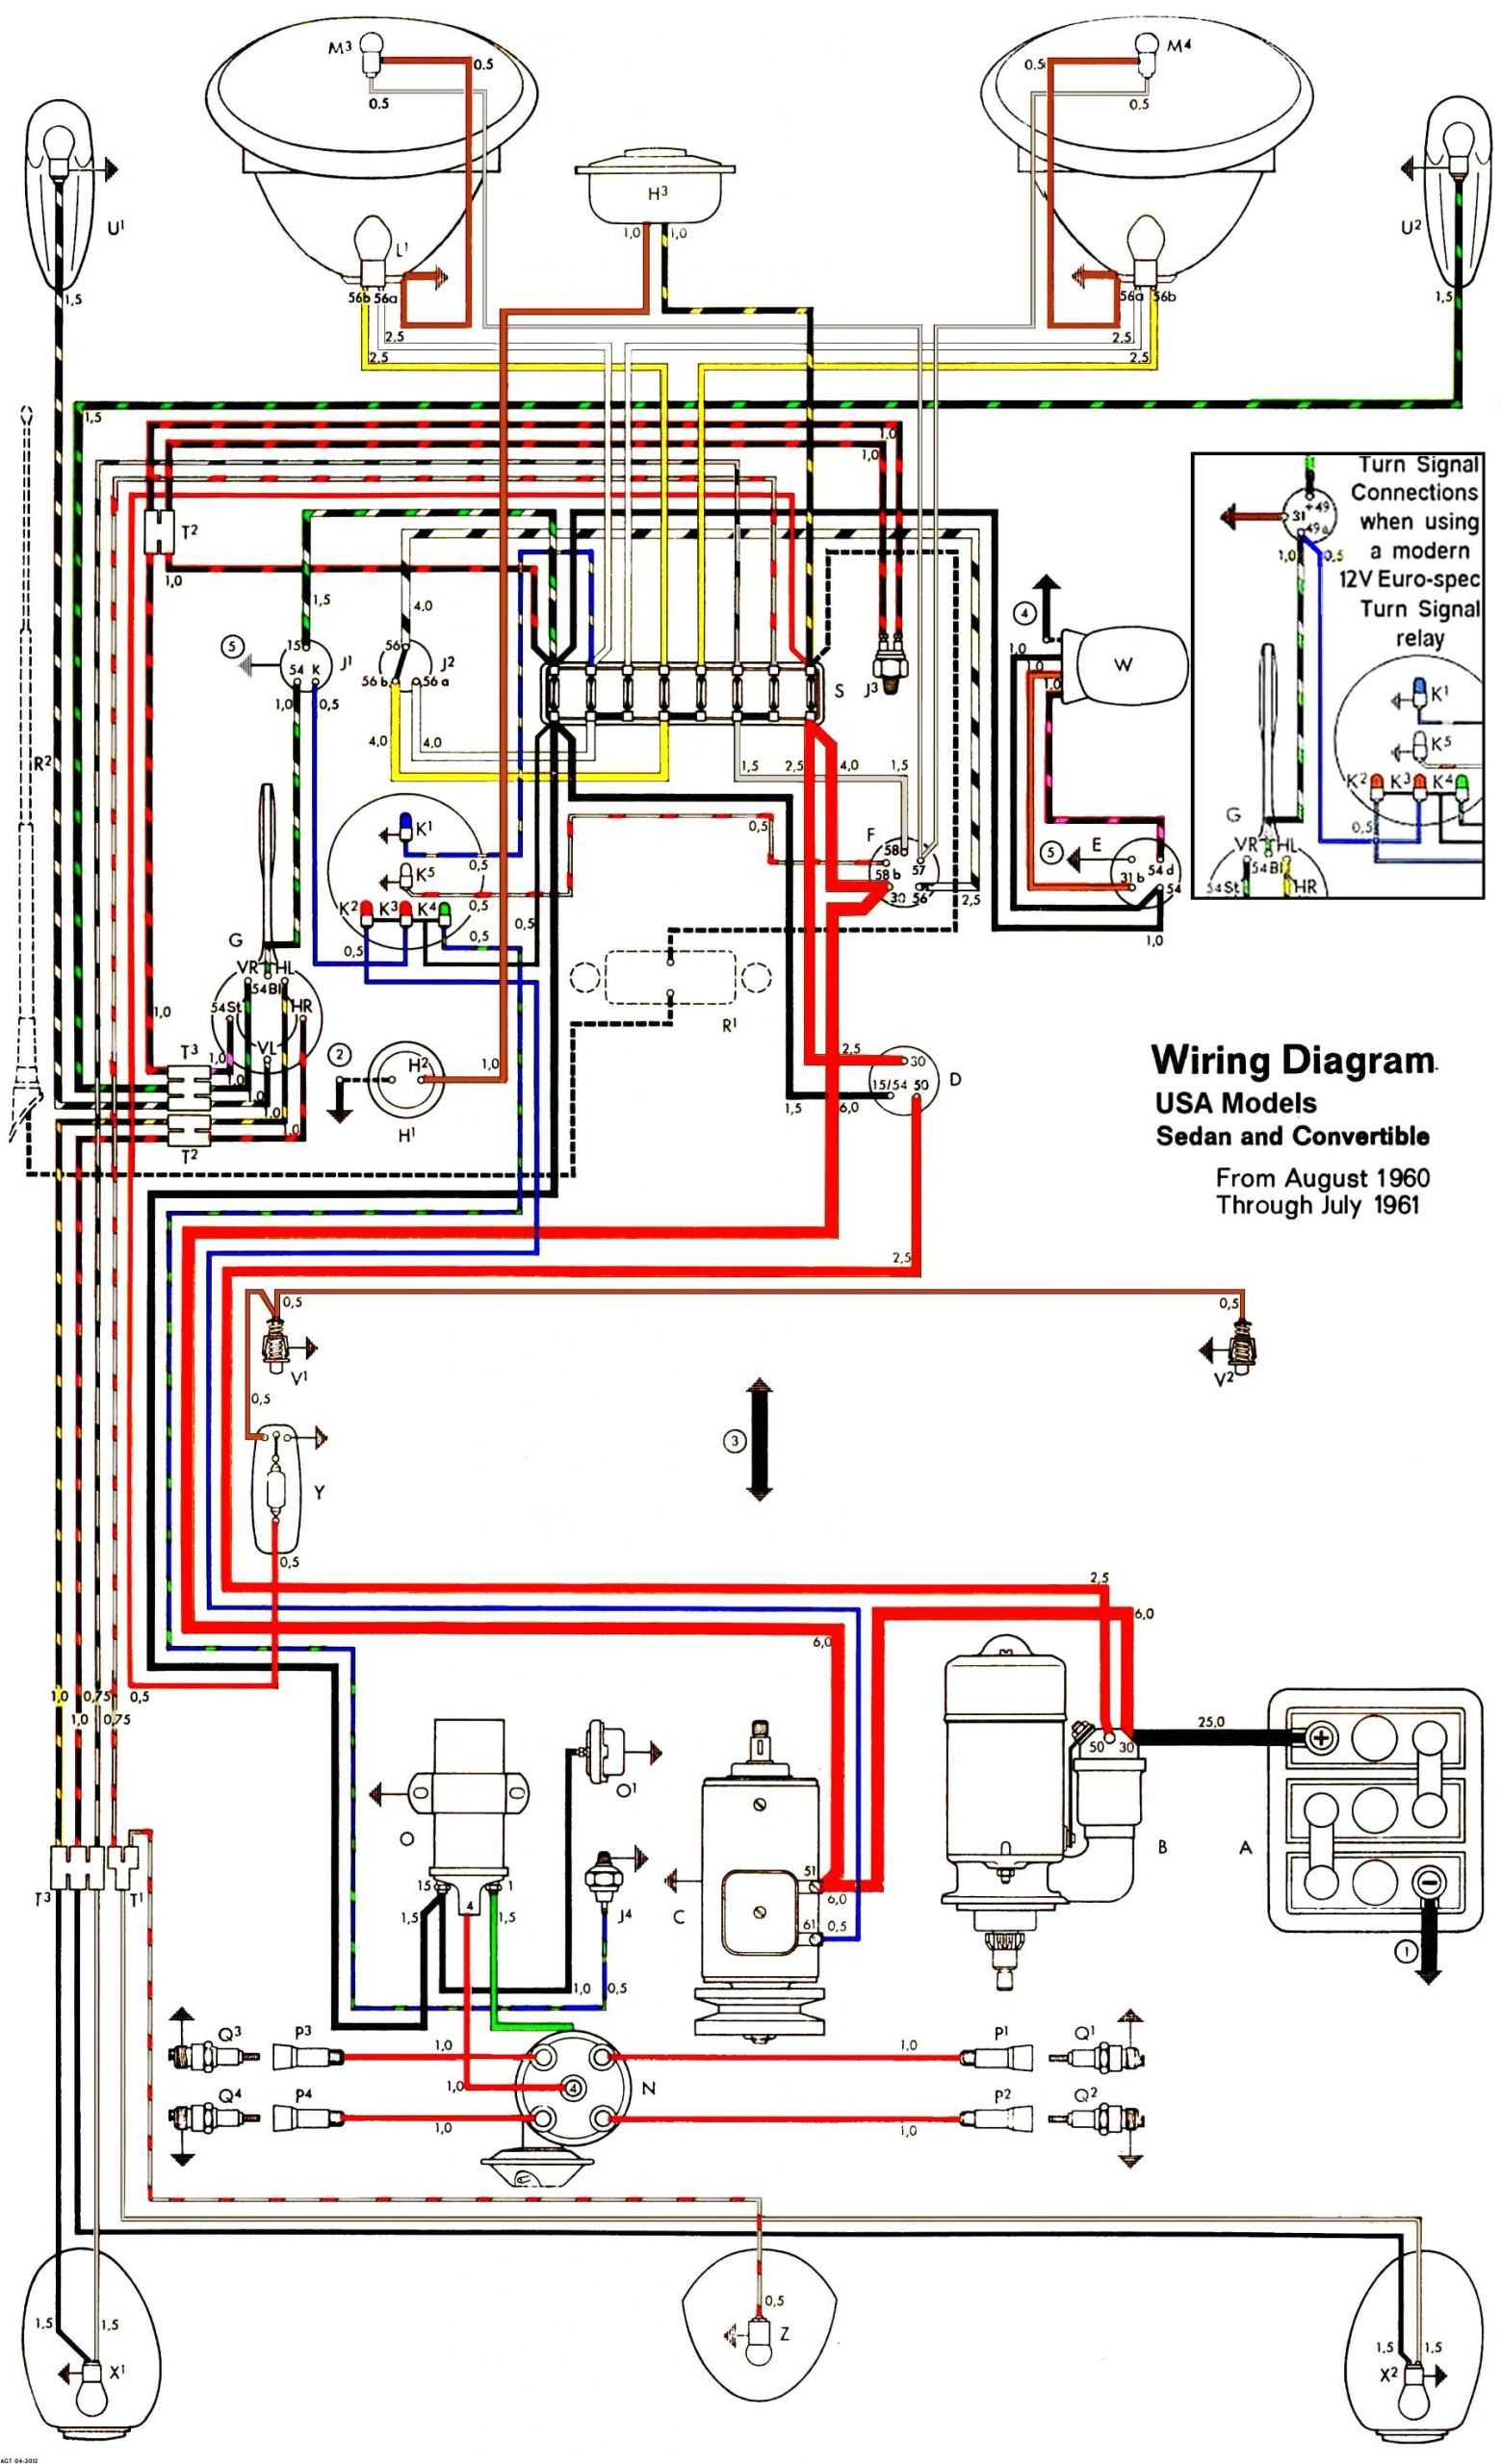 2003 Volkswagen Beetle Wiring Diagram Wrg 5461 73 Beetle Bug Wiring Diagram